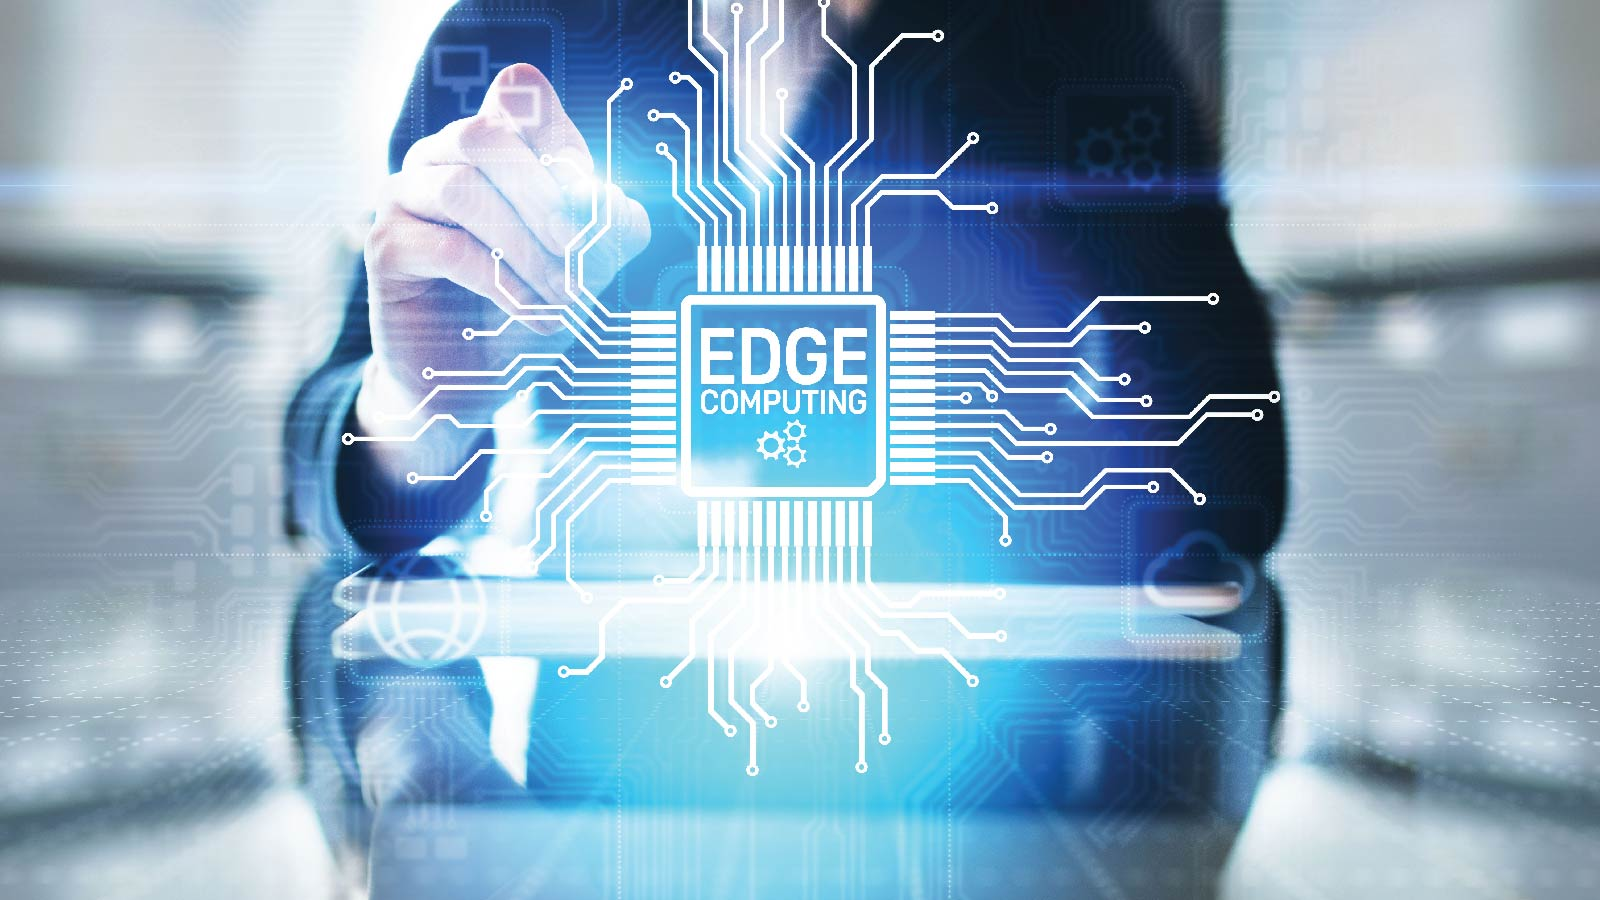 IoT Data and the impact of its Close Integration with Edge Computing